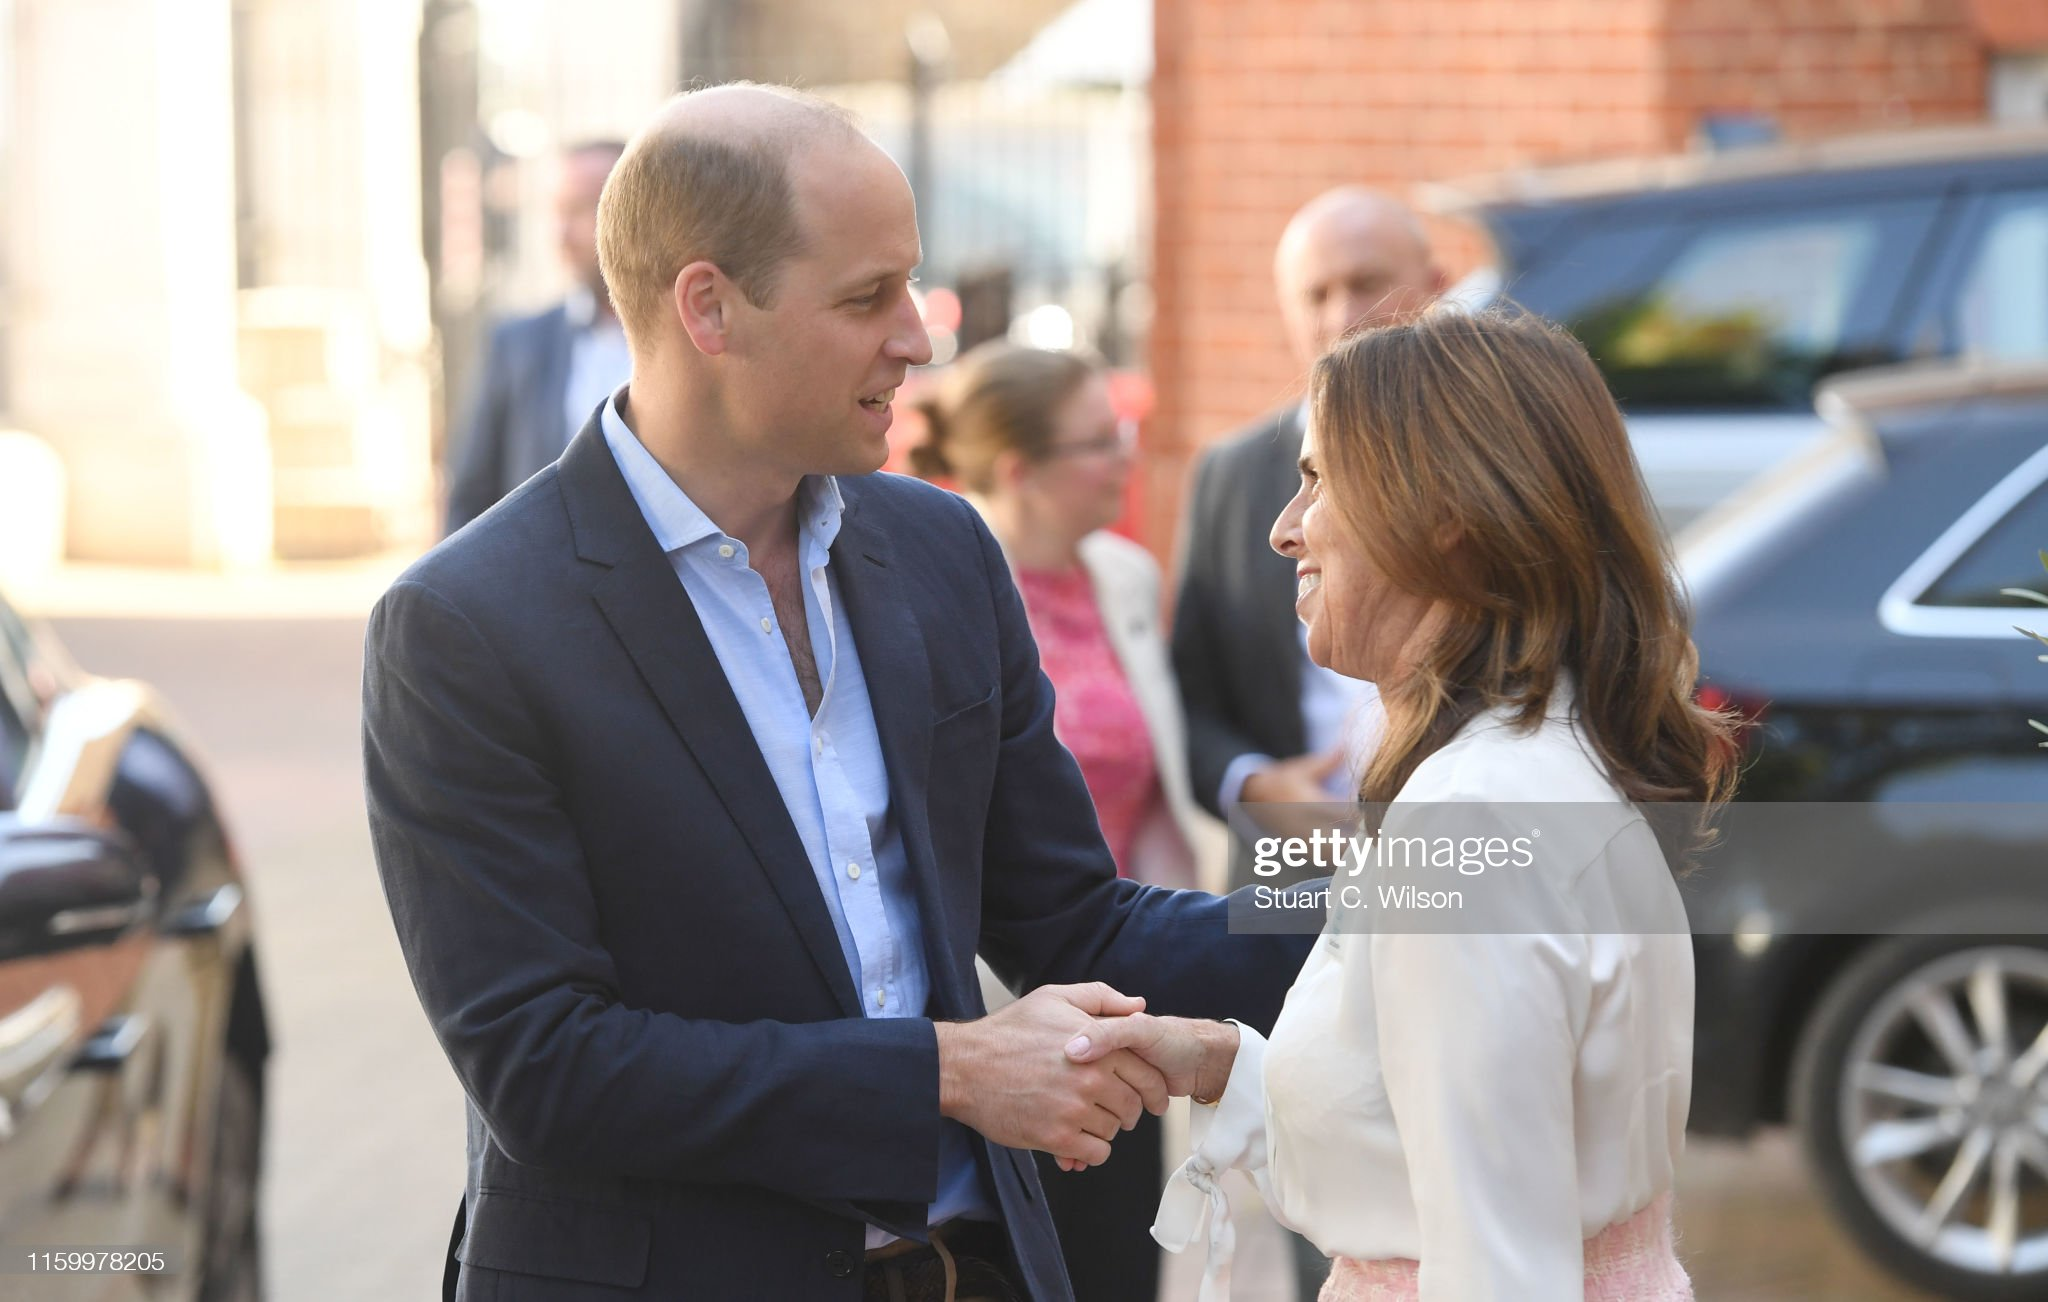 prince-william-duke-of-cambridge-visits-the-royal-marsden-on-july-04-picture-id1159978205